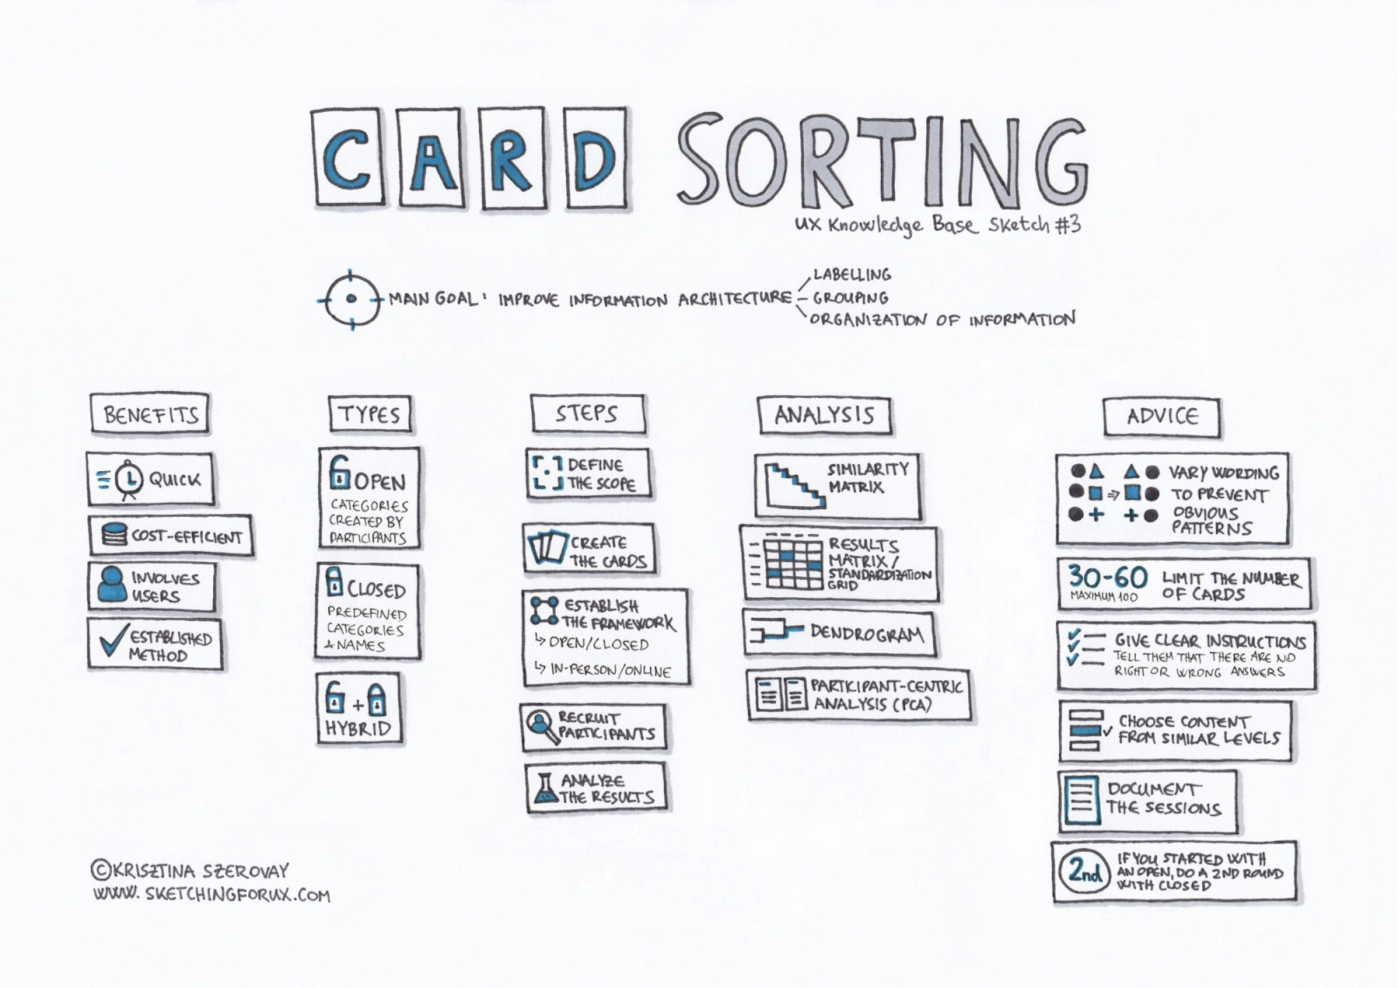 Card sorting technique